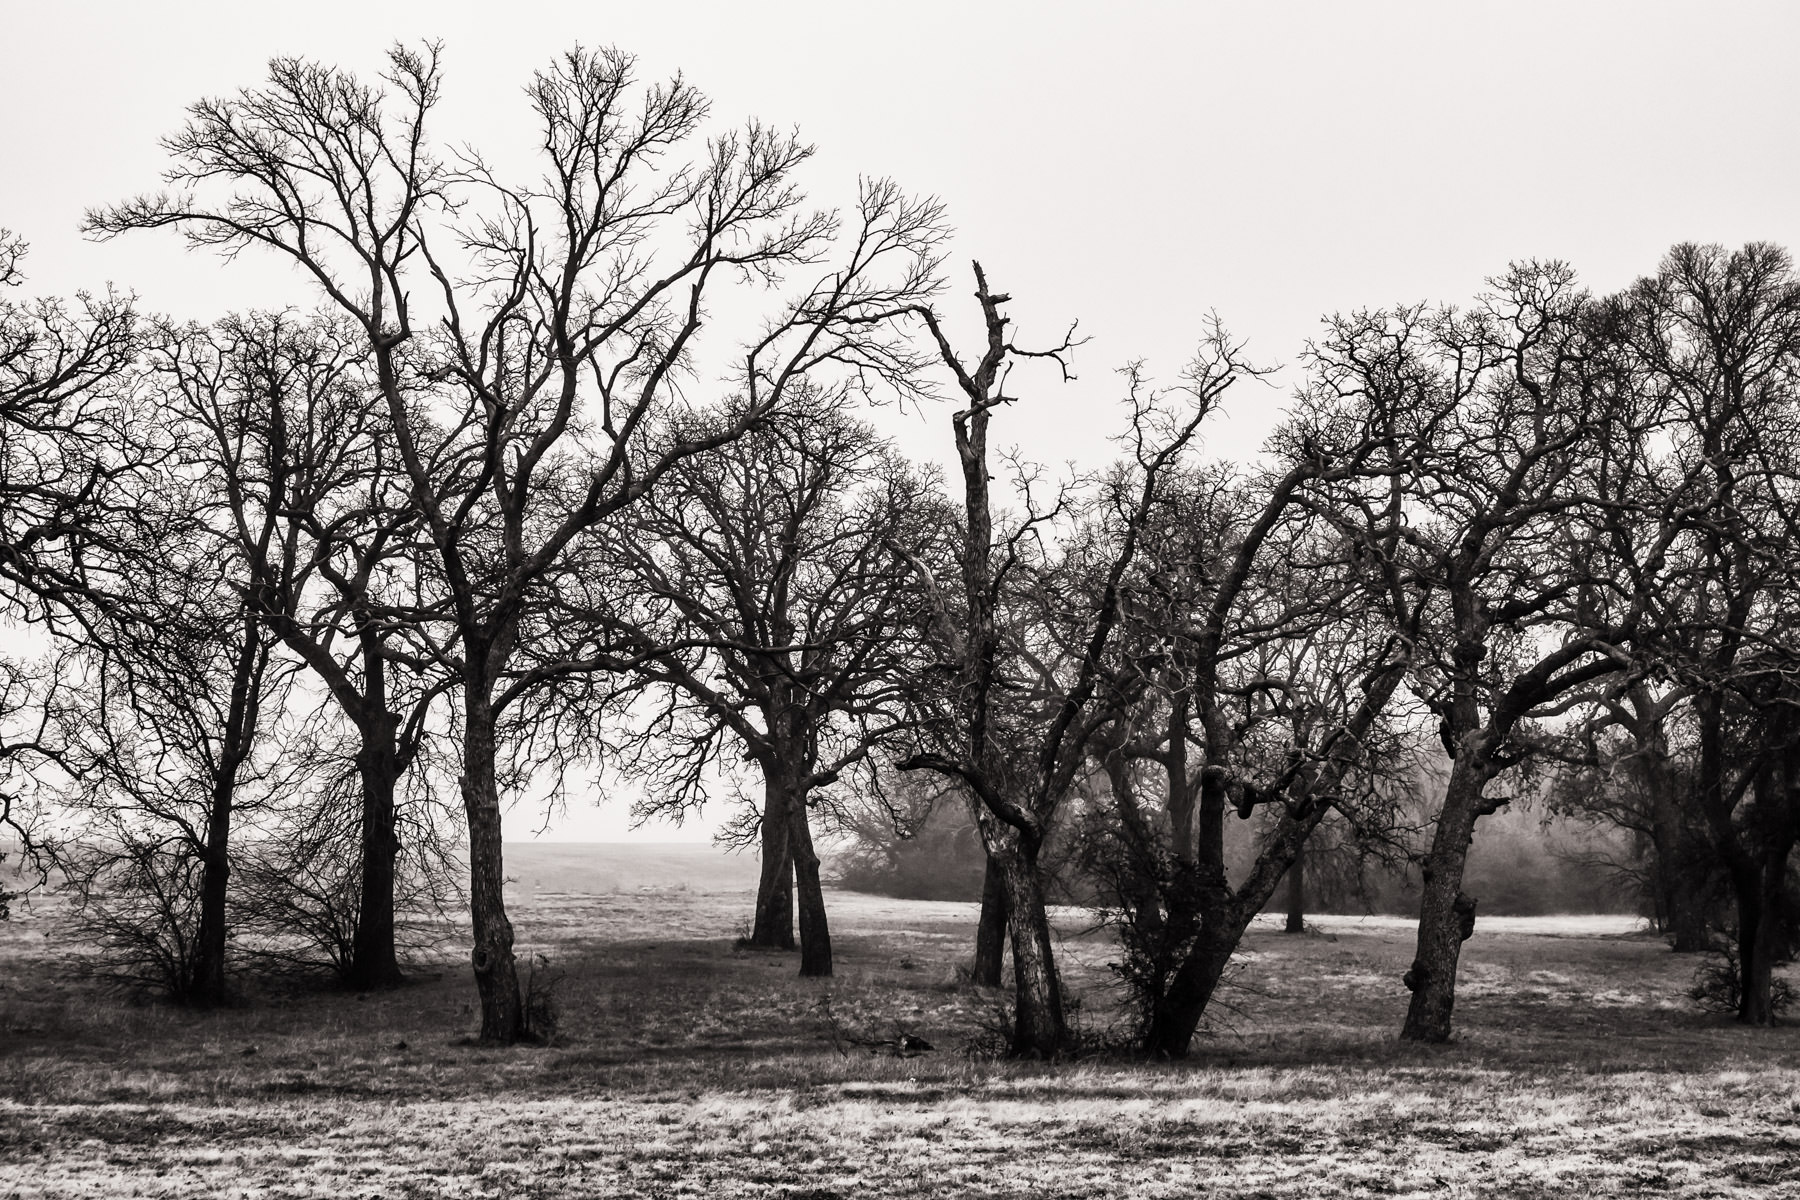 Stark, leafless trees spotted on the grounds of DFW International Airport, Texas.